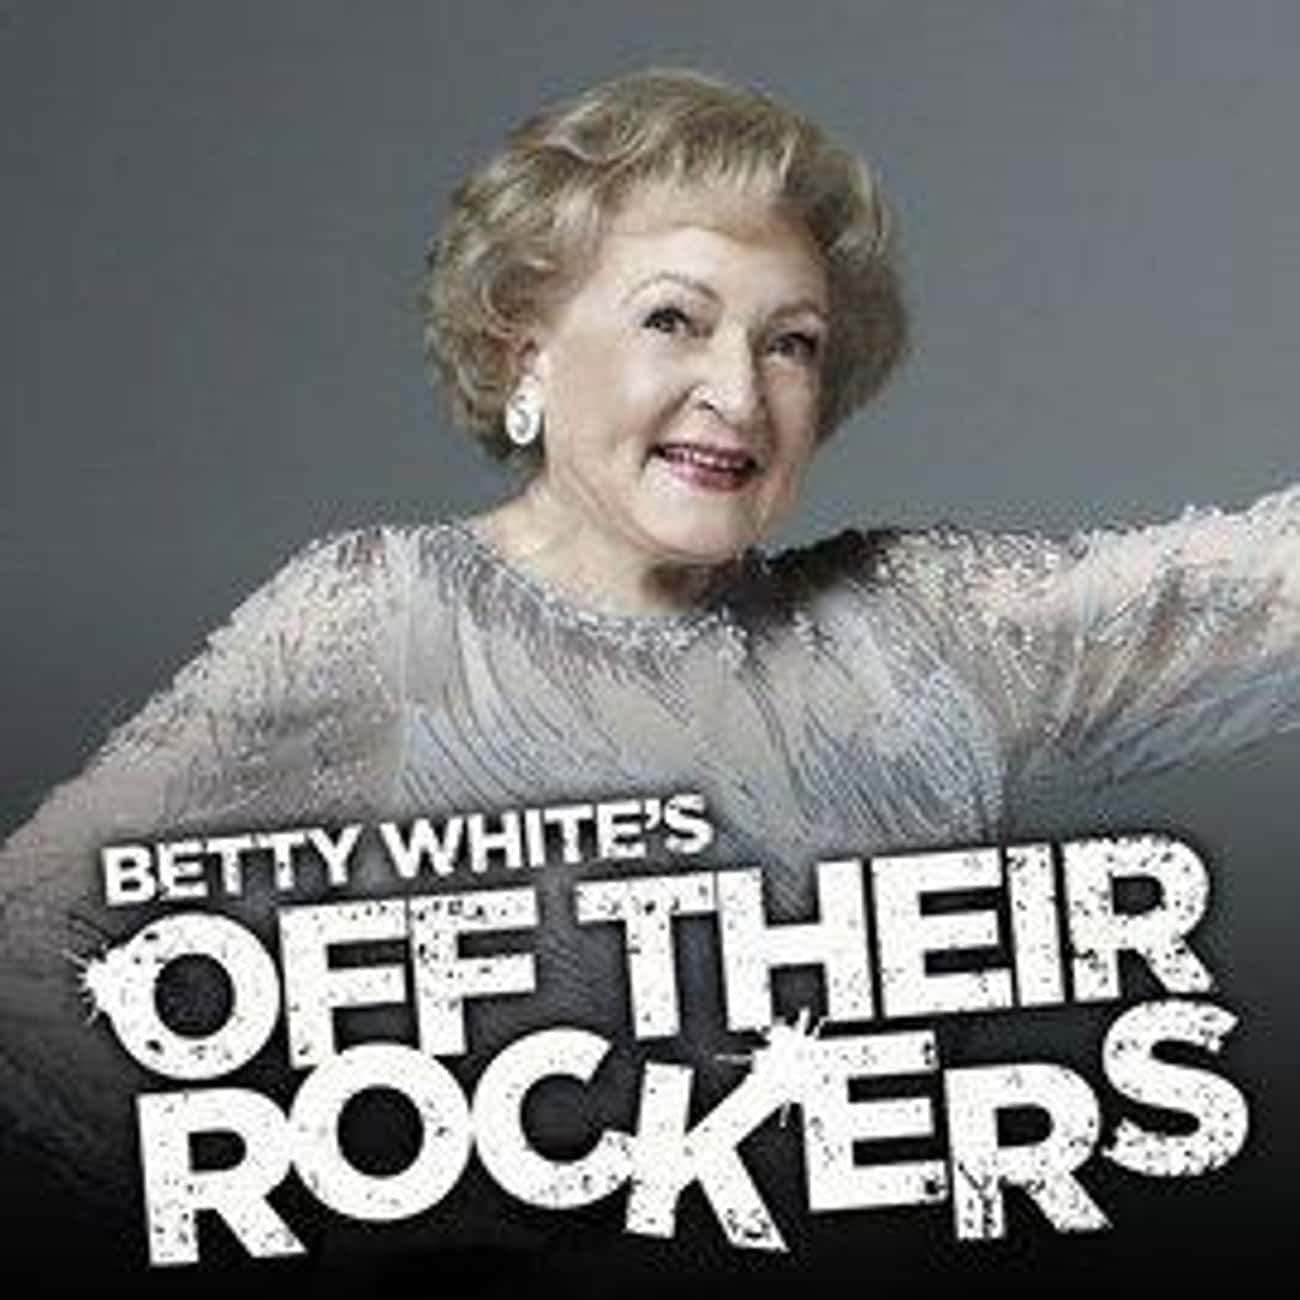 Betty White's Off Their Rocker is listed (or ranked) 4 on the list The Greatest TV Shows About Retirement